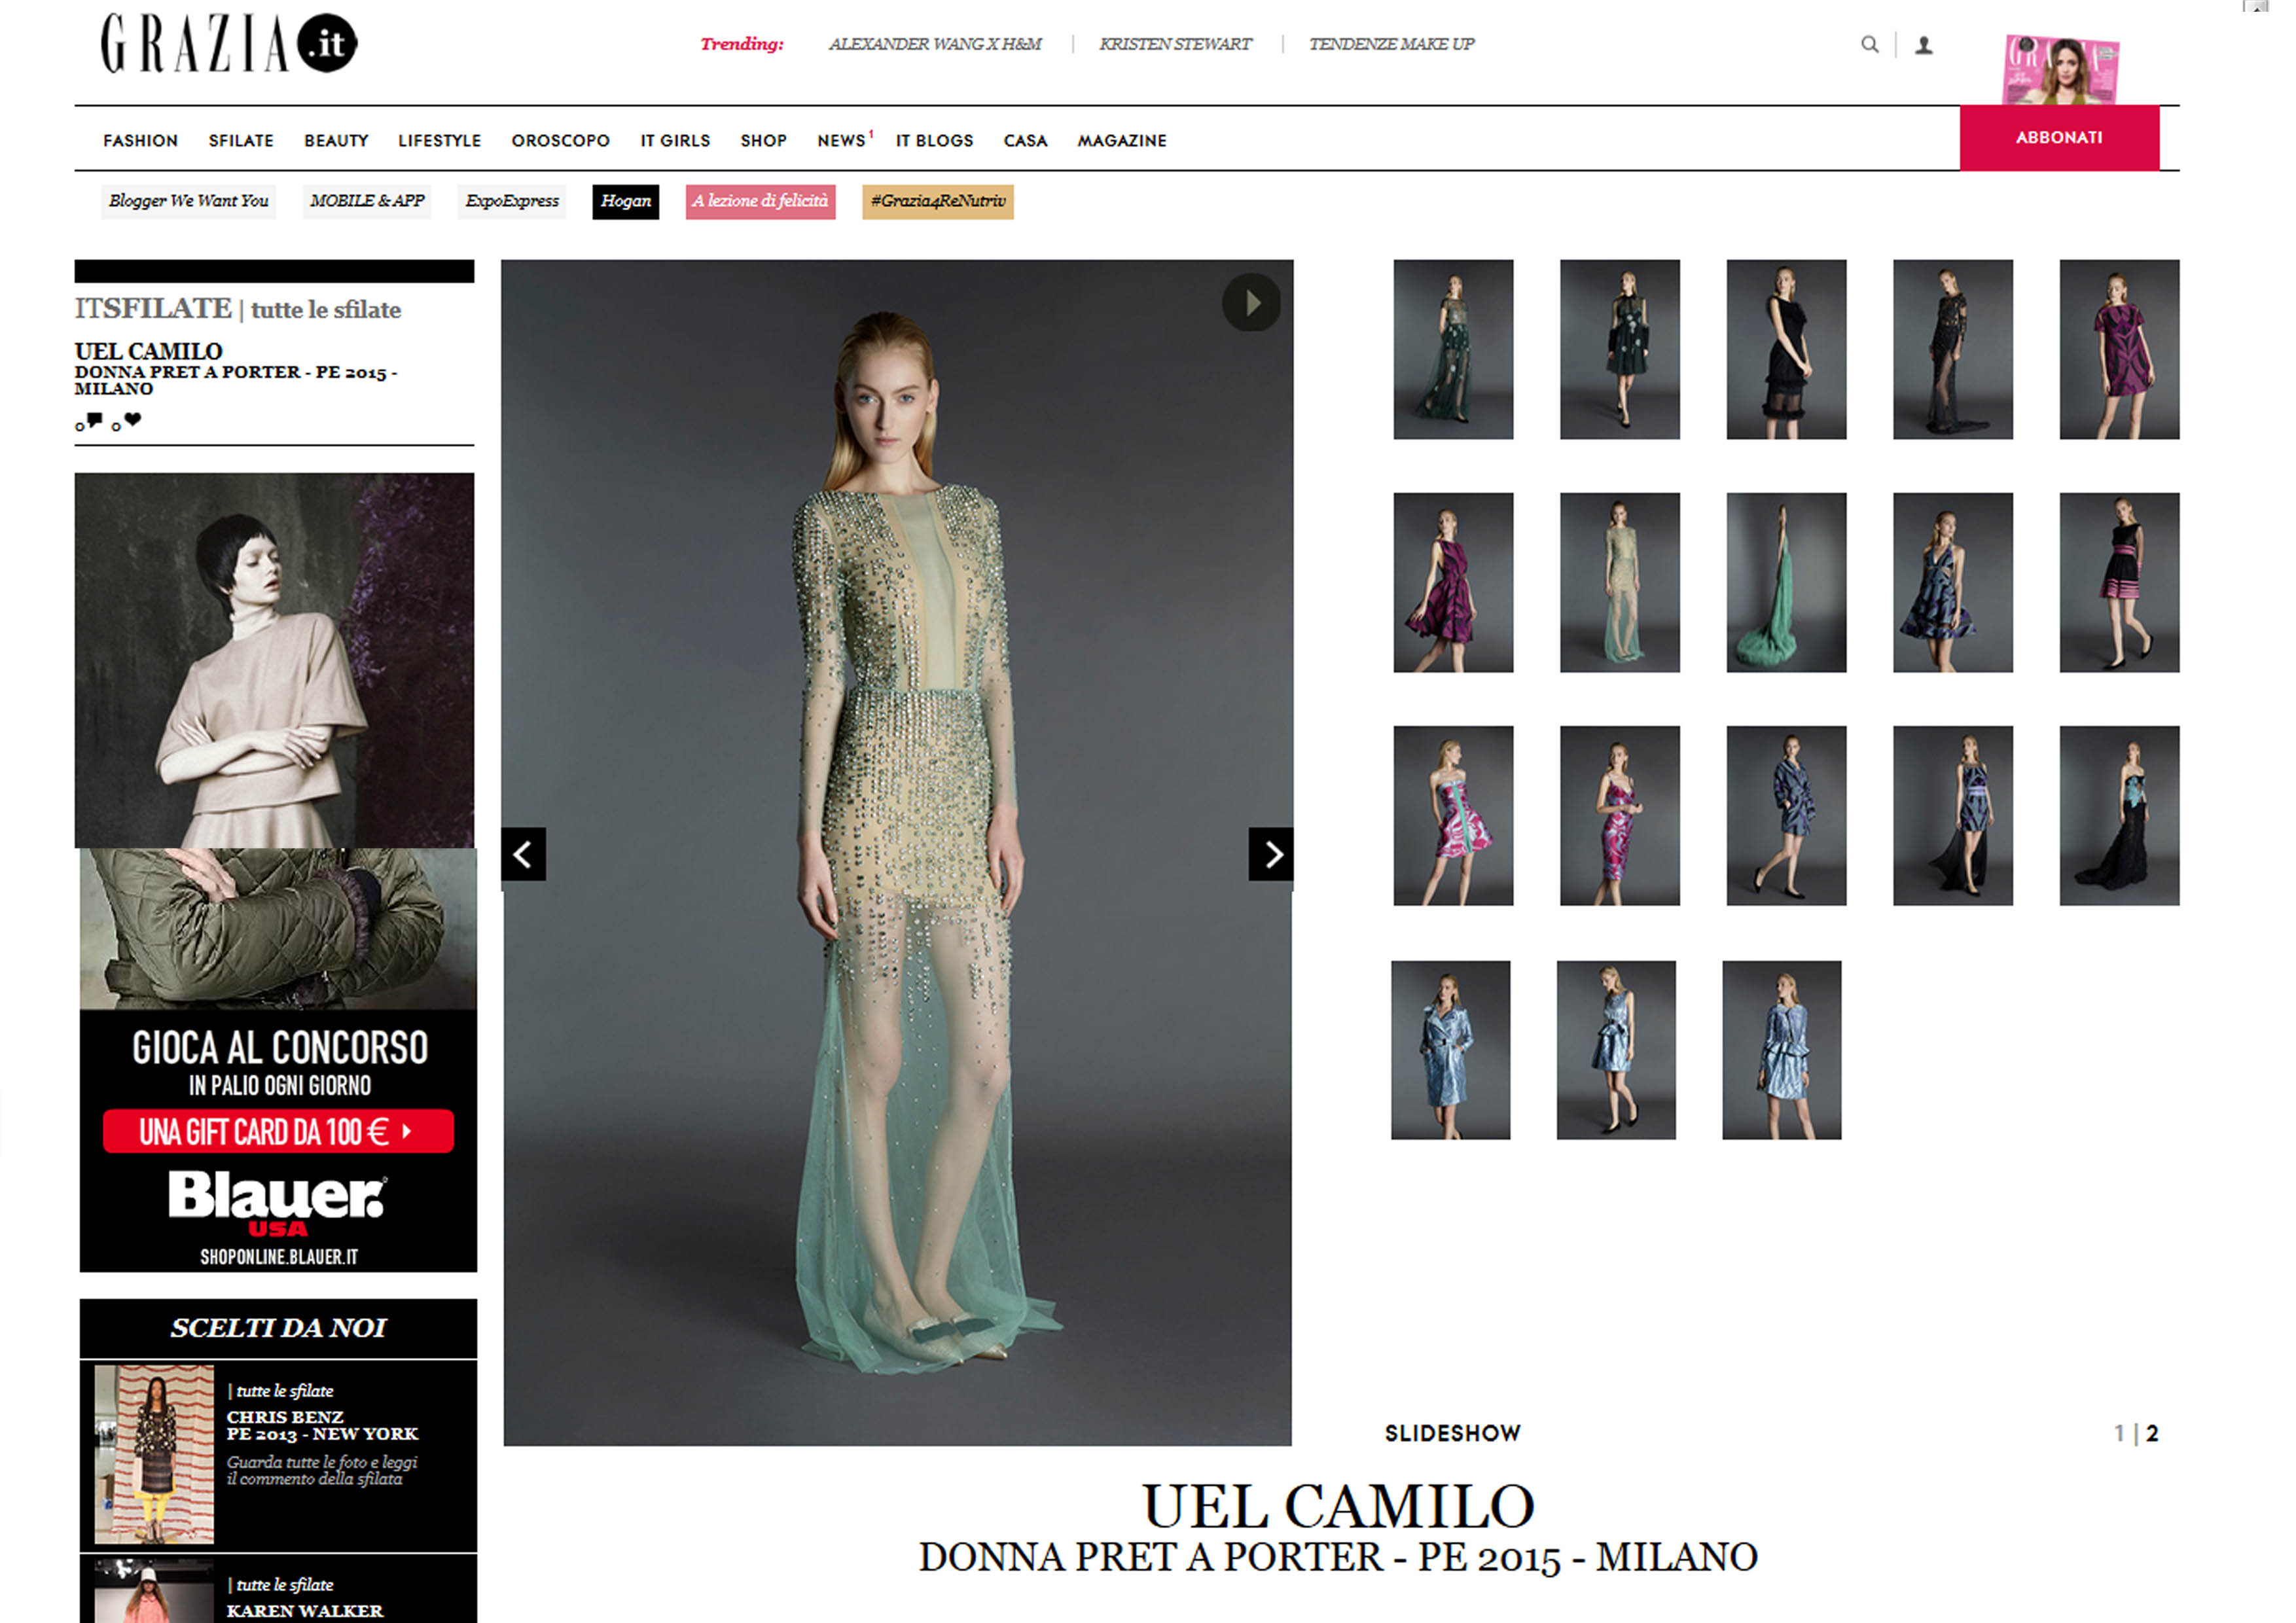 Uel Camilo @Grazia.it